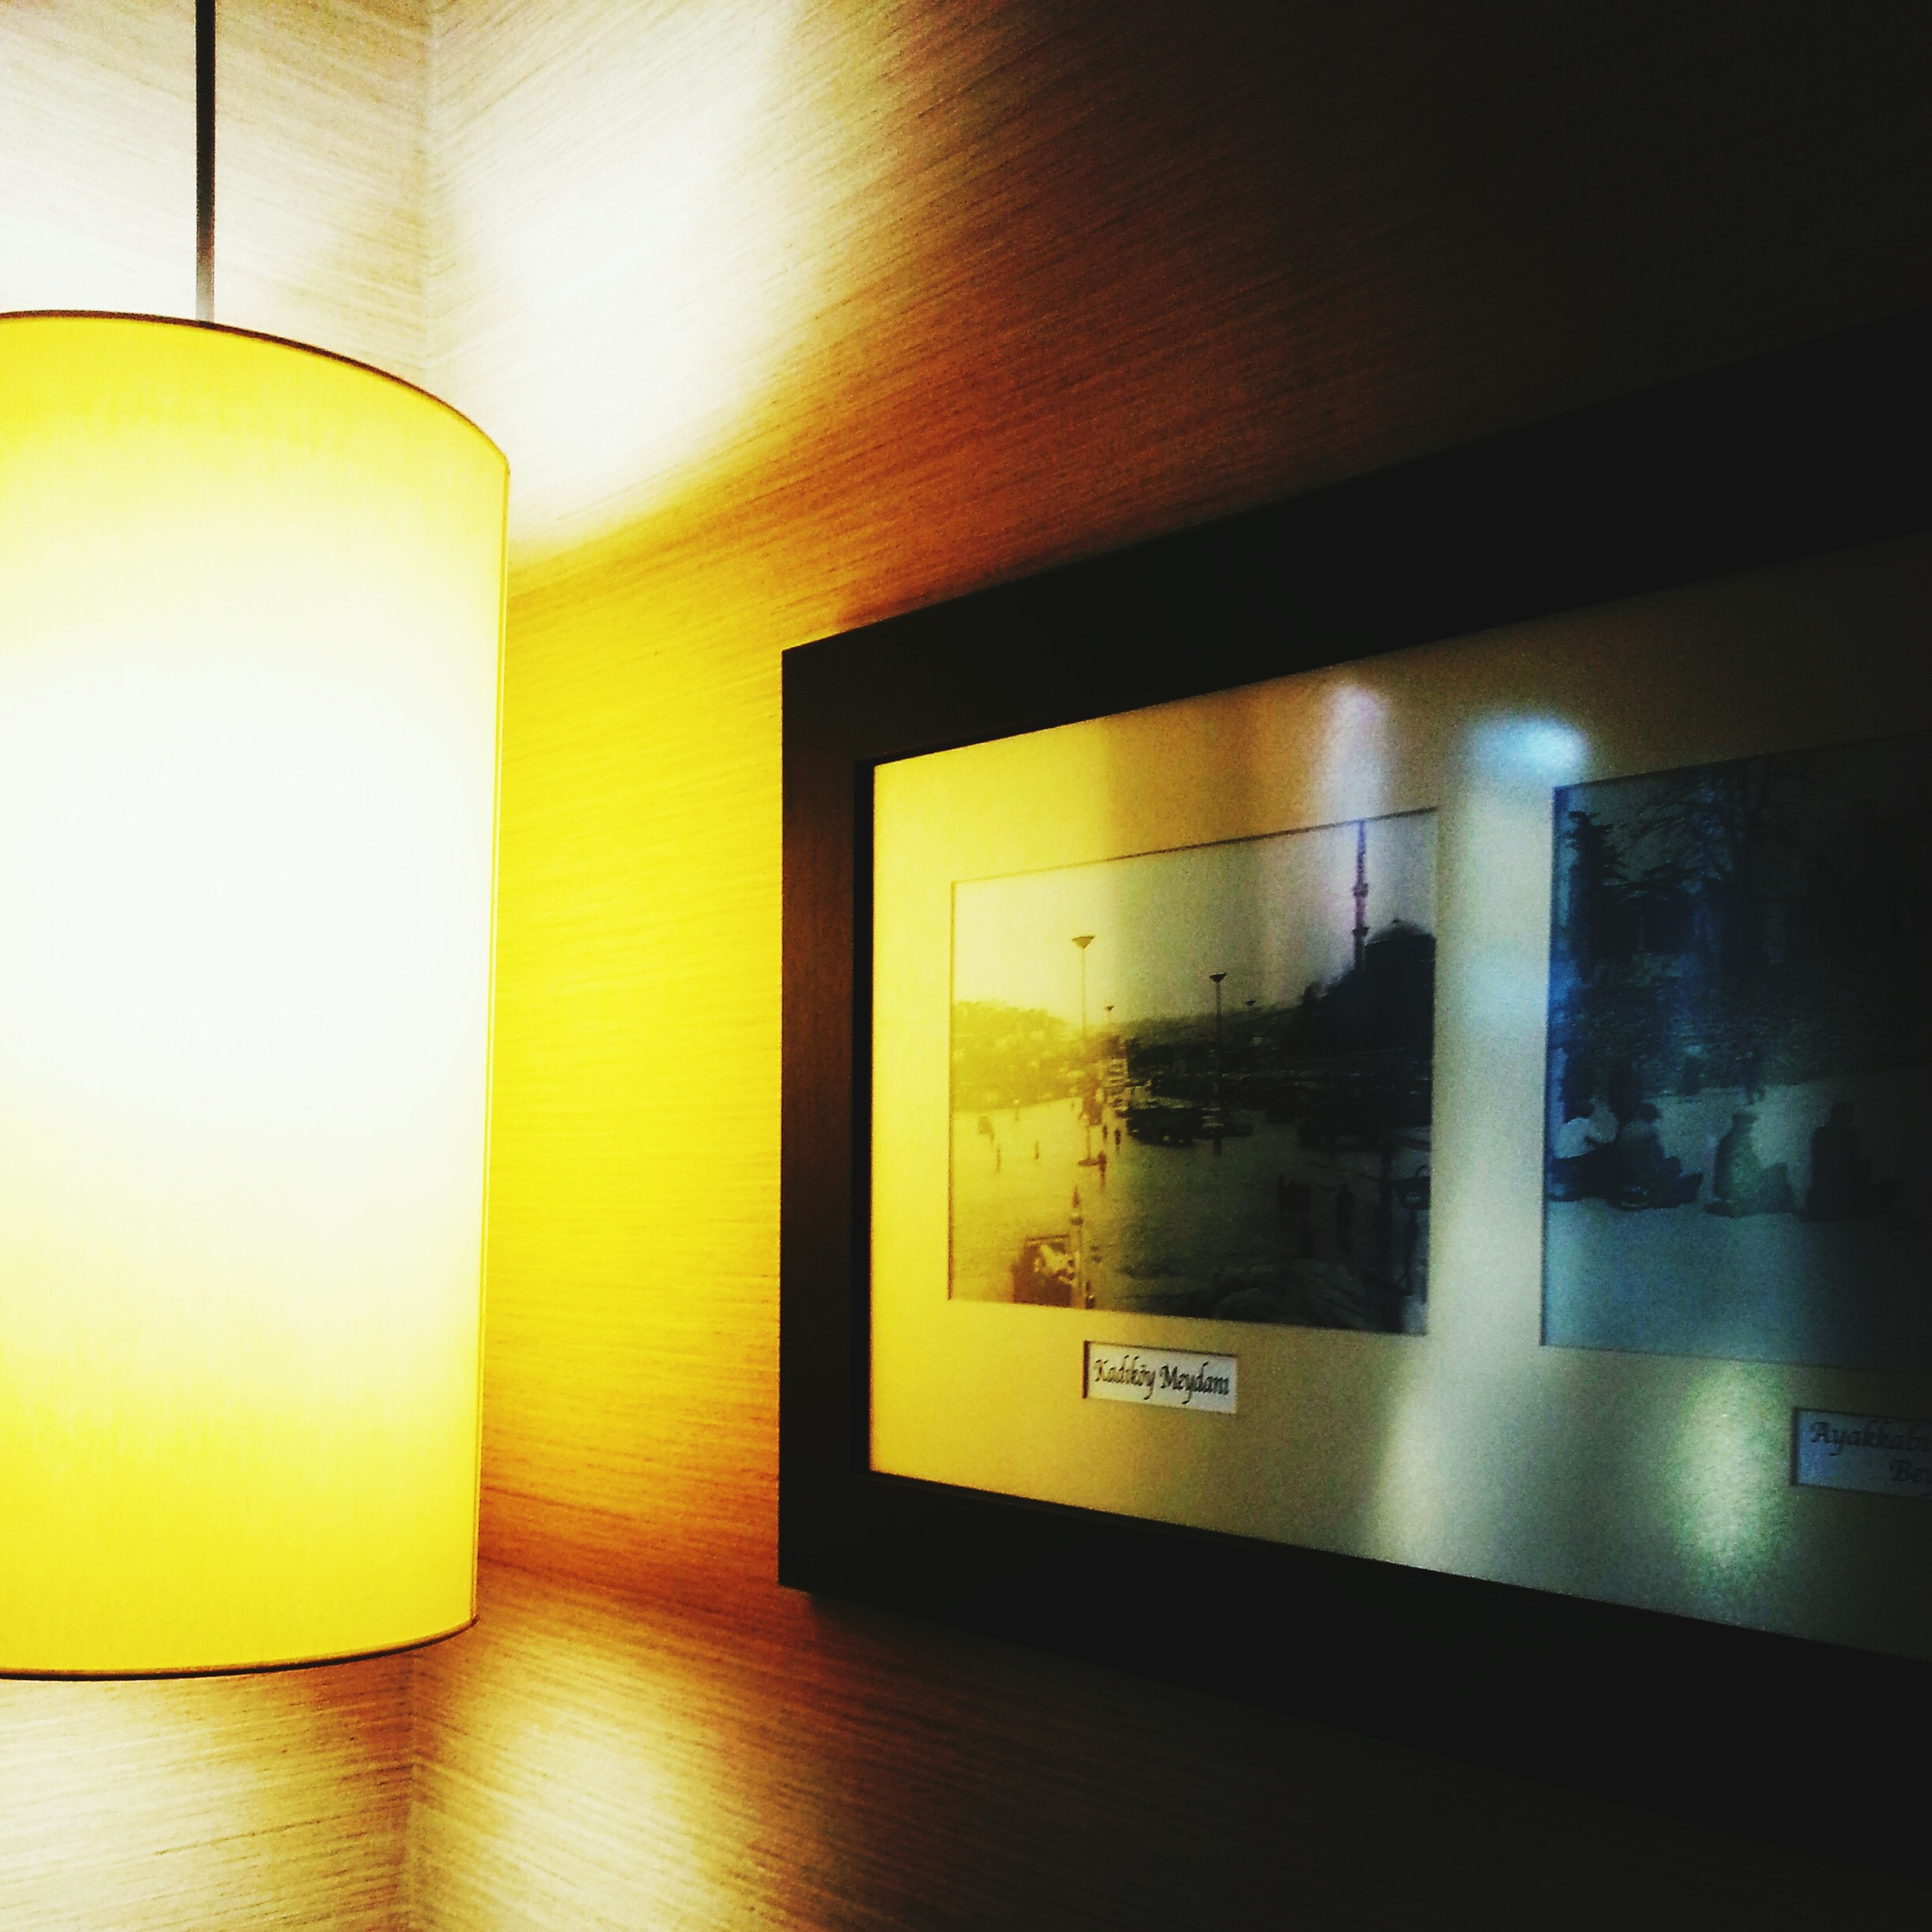 indoors, illuminated, reflection, yellow, technology, lighting equipment, glass - material, modern, no people, wall - building feature, home interior, electricity, empty, transparent, domestic room, convenience, close-up, still life, absence, table